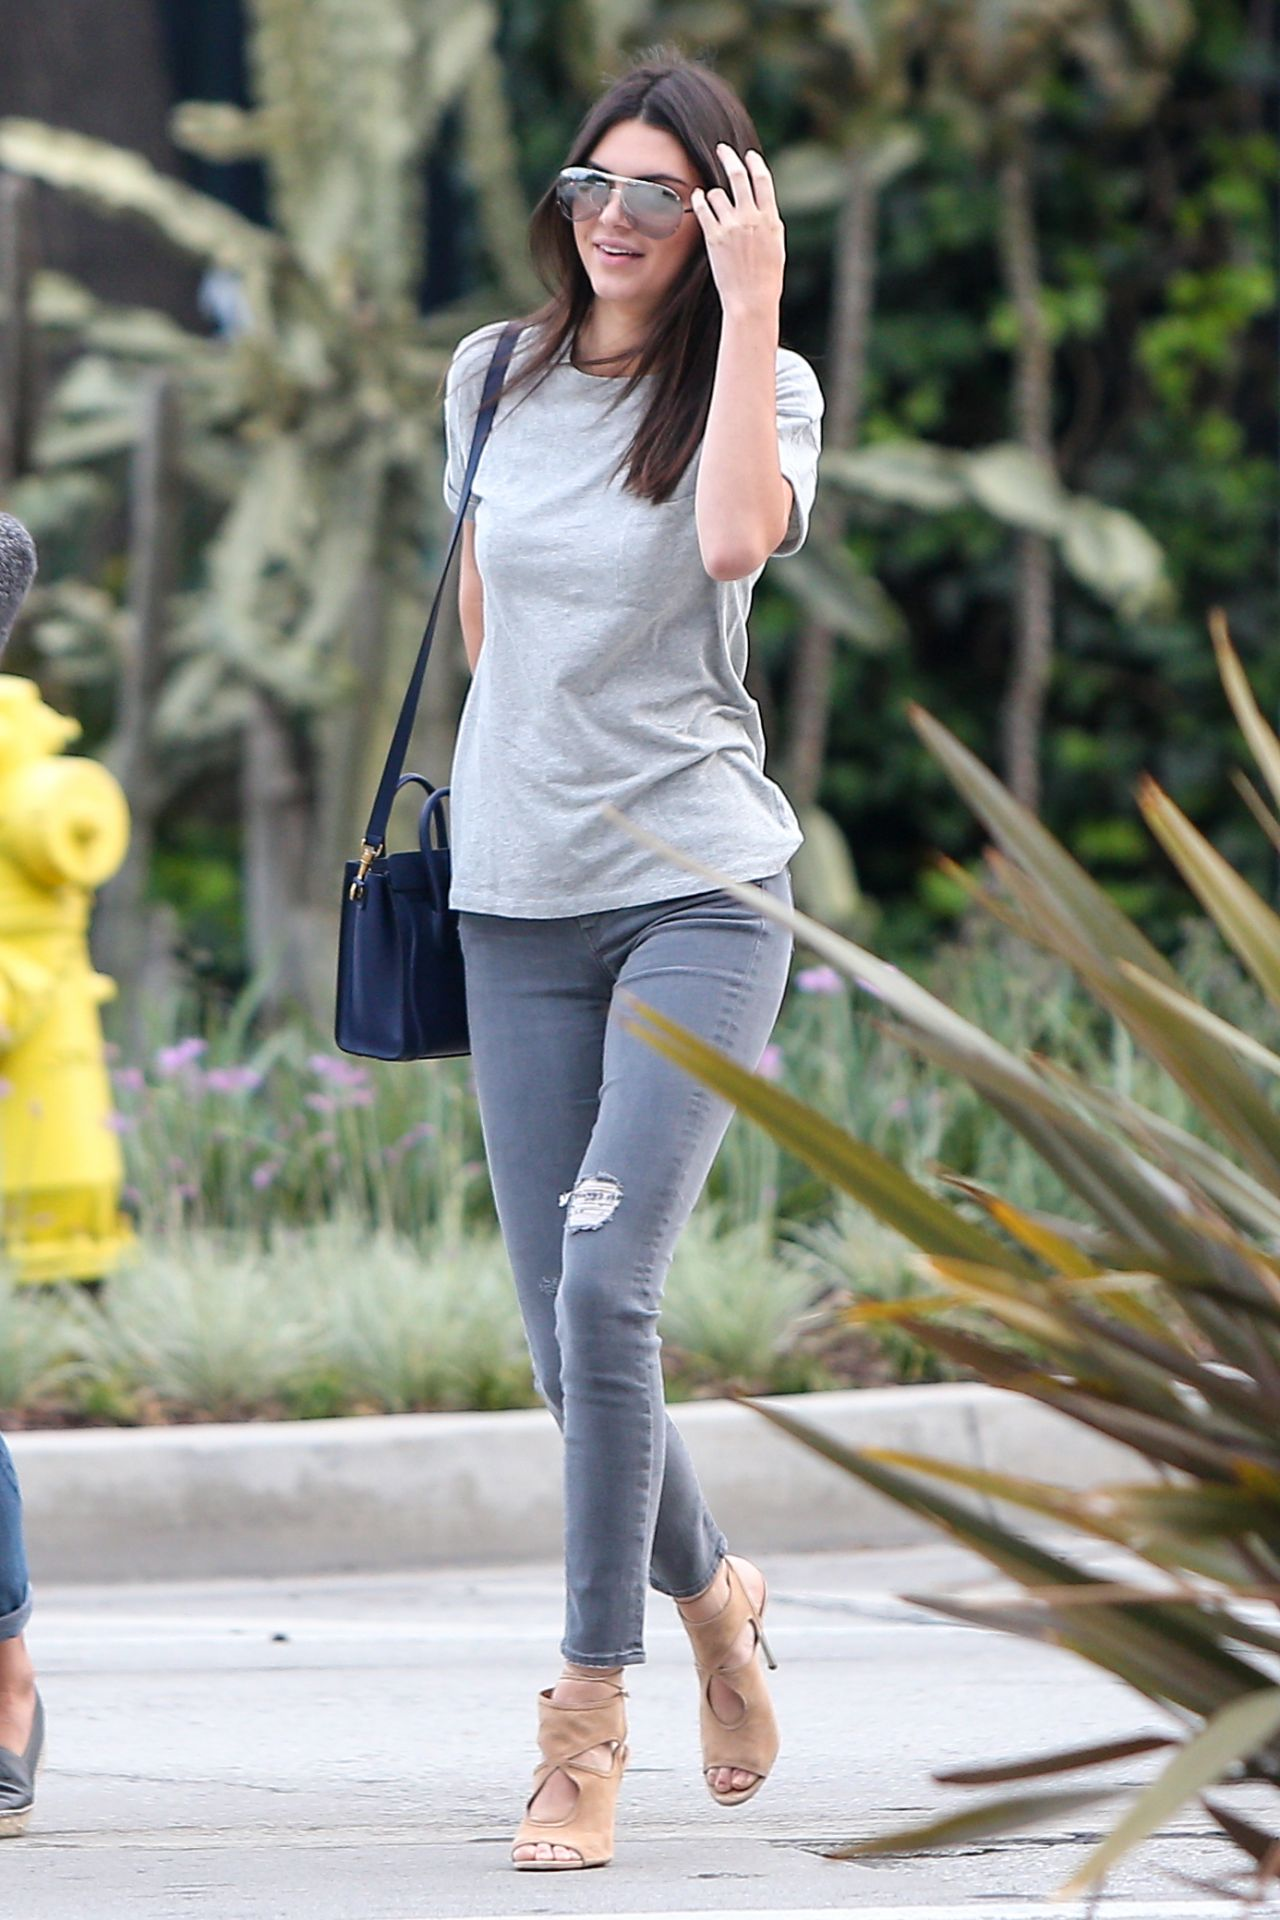 Kendall Jenner In Tight Jeans Out In Los Angeles April 2015